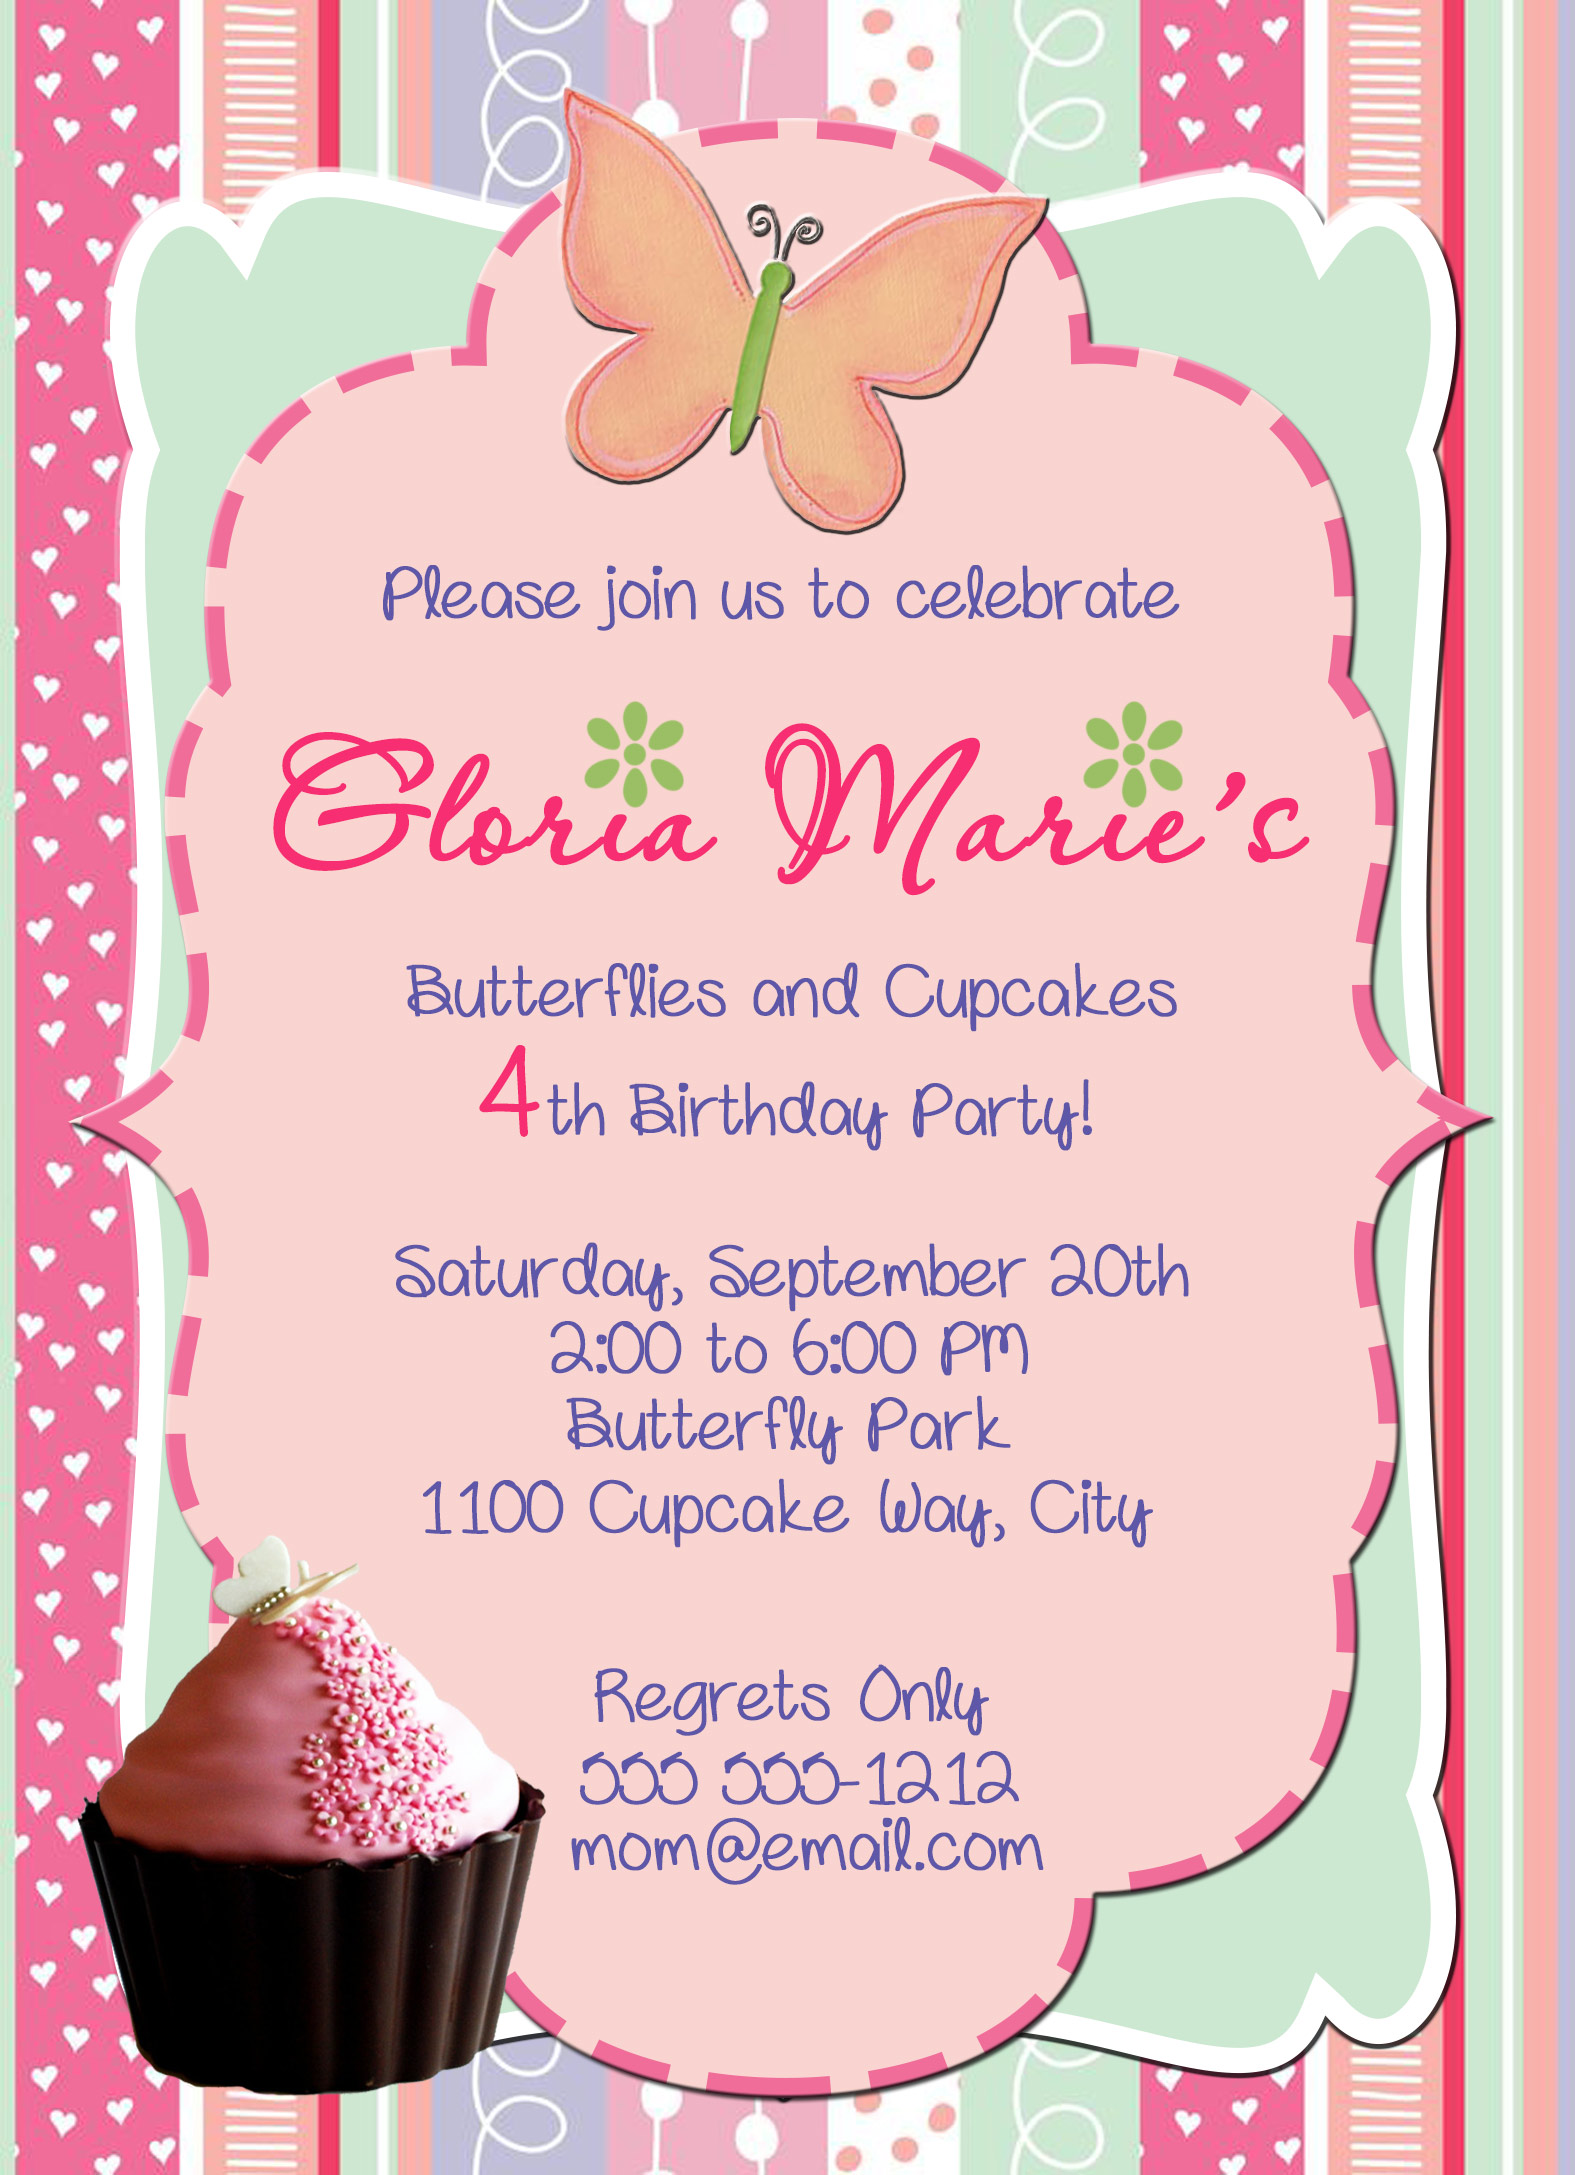 Cupcakes personalized birthday invitation 1 sided birthday card cupcakes personalized birthday invitation 1 sided birthday card party invitation cupcake party filmwisefo